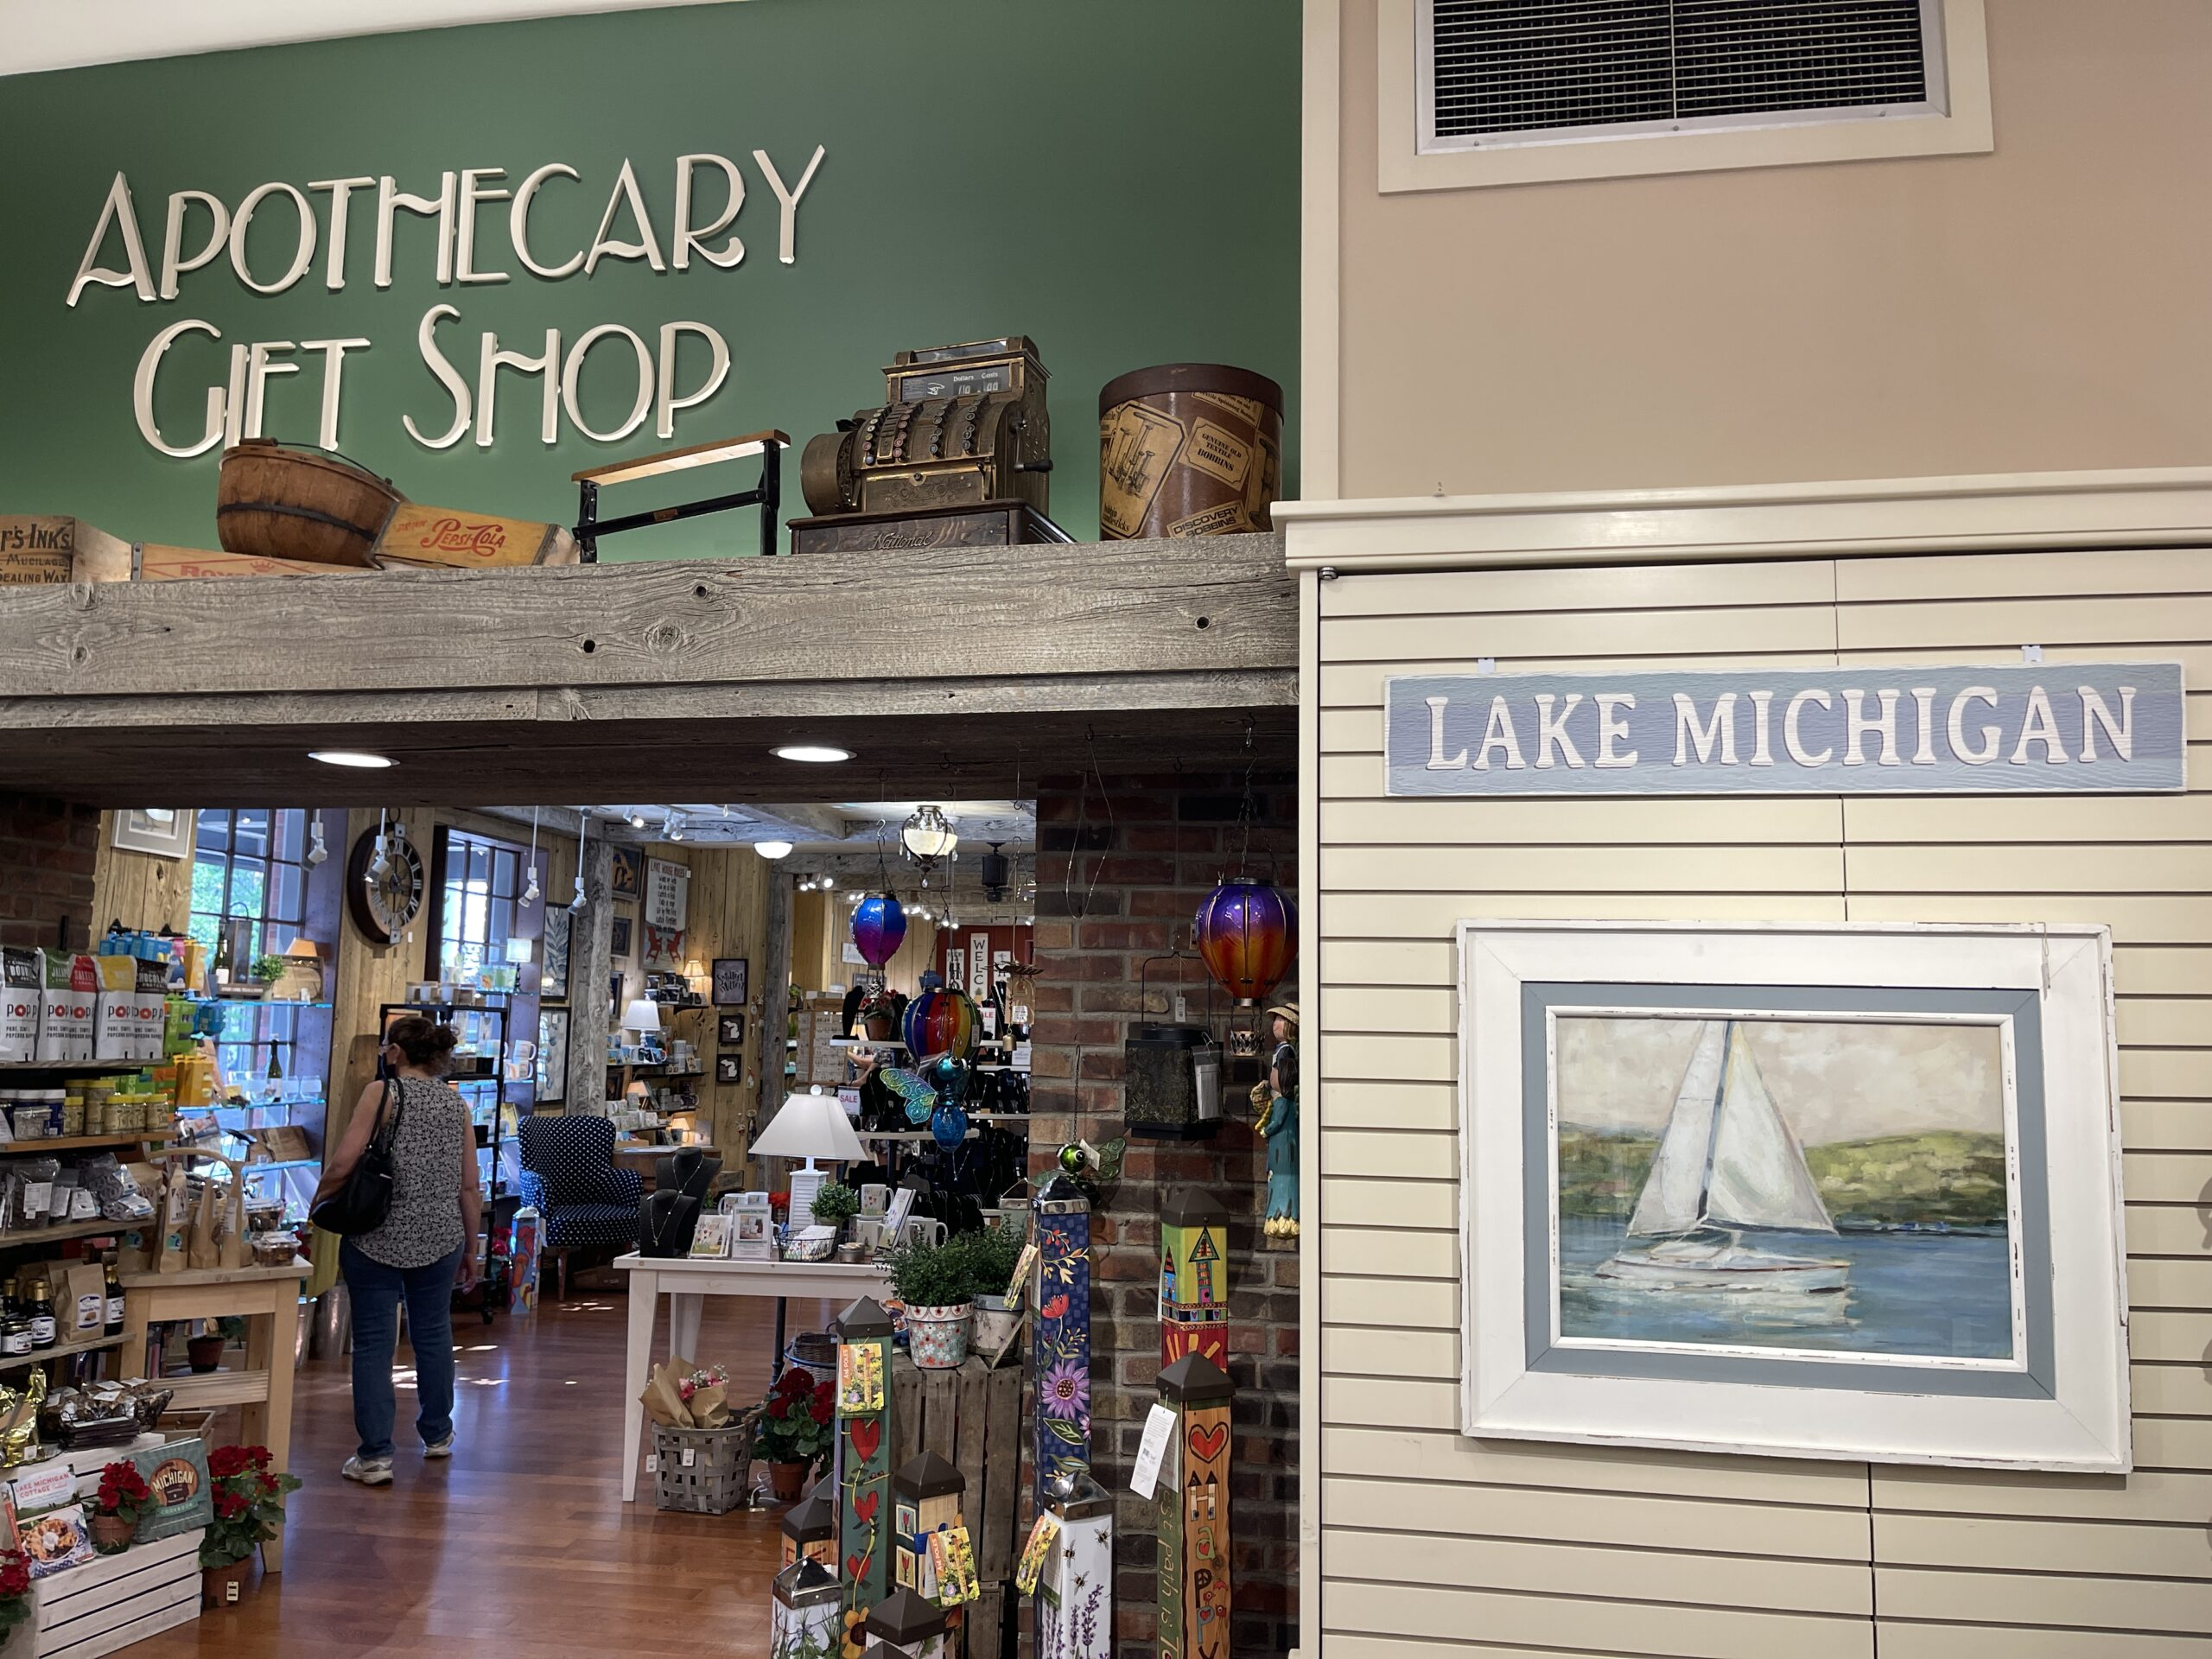 Inside the Apothecary Gift Shop in downtown Holland MI.